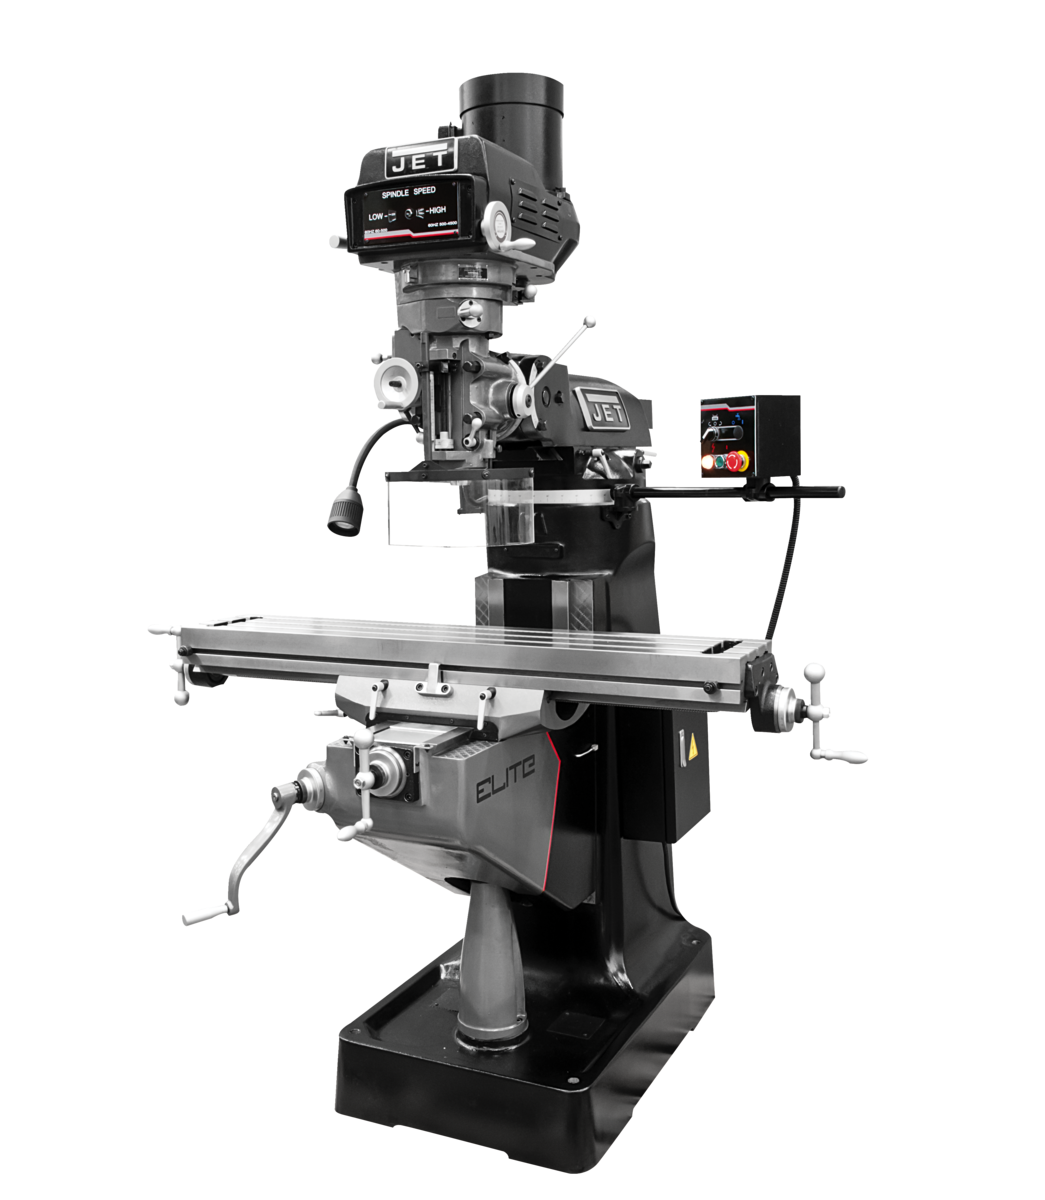 ETM-949 mill with 2-Axis ACU-RITE 203 DRO and X, Y-Axis JET Powerfeeds and USA Made Air Draw Bar